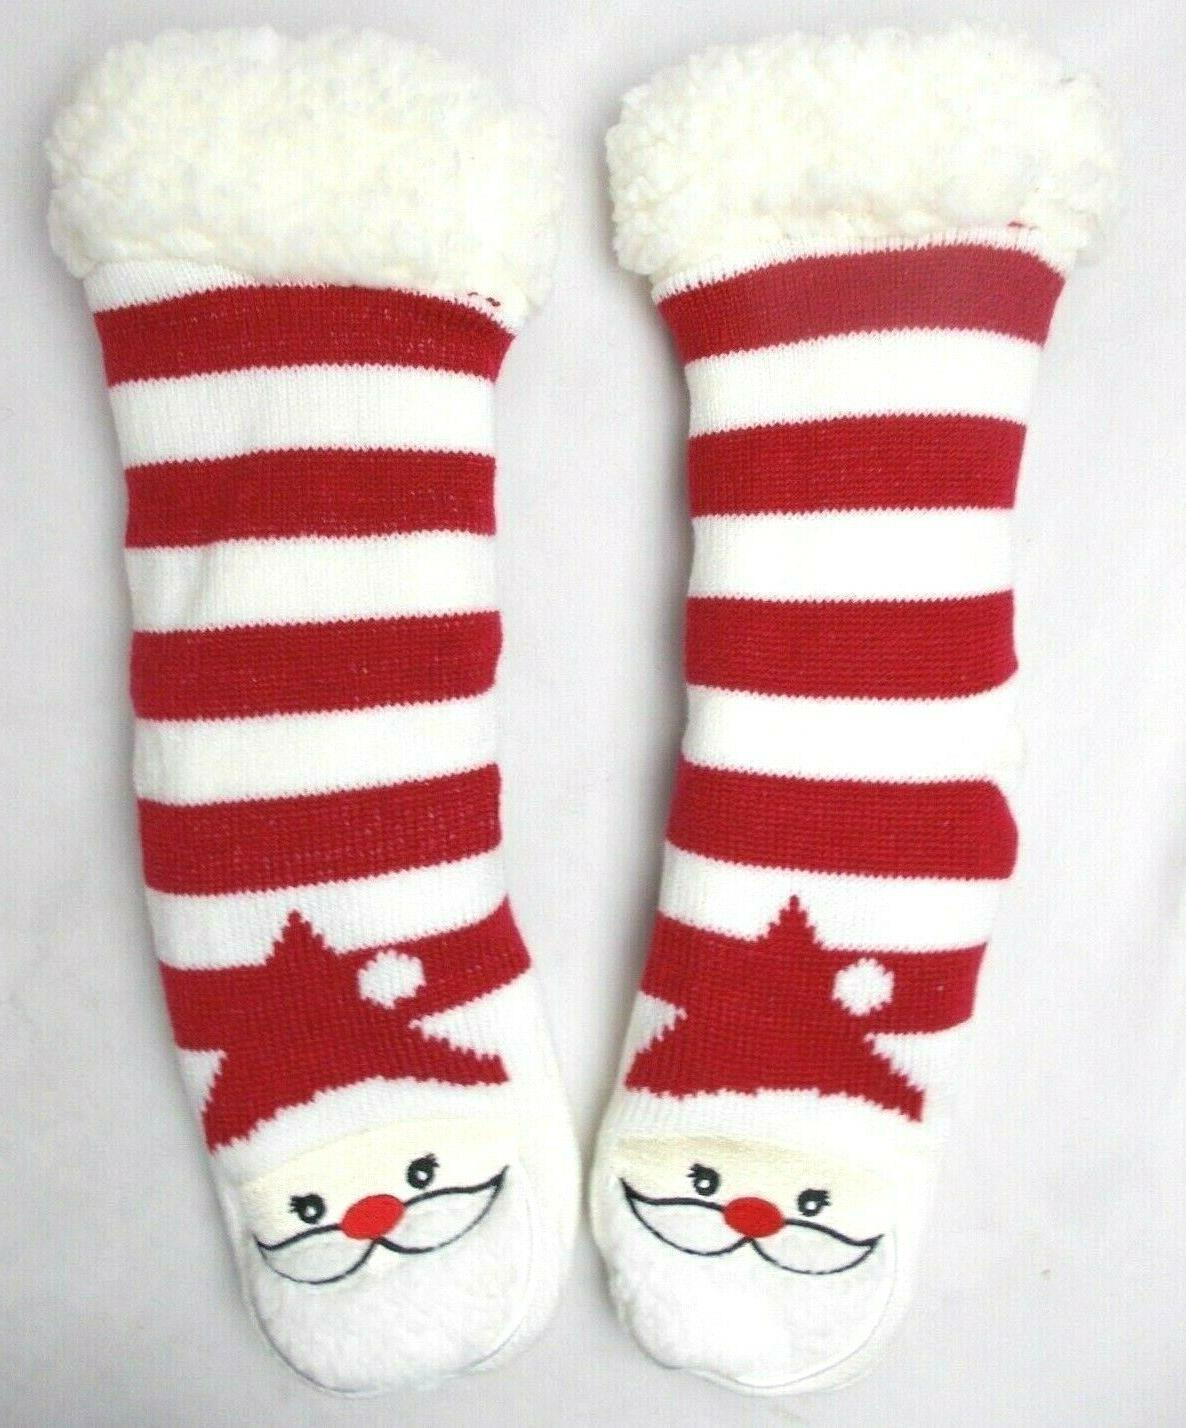 Charter Club Women's House Slipper Socks Santa Striped Fleec